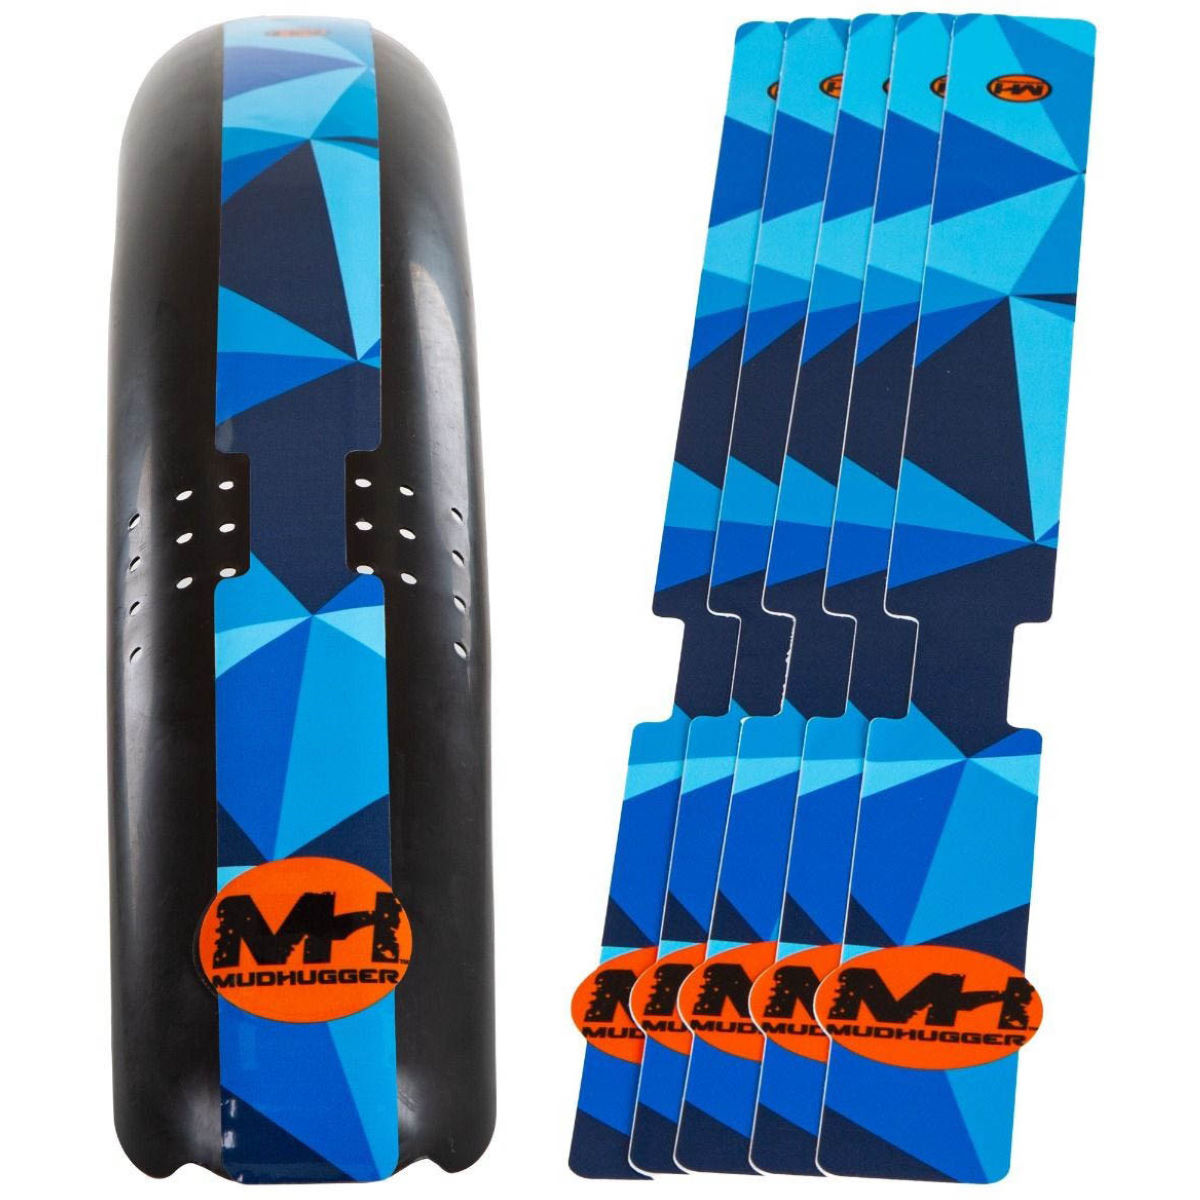 Mudhugger Mudhugger Decal Pack   Fixed Mudguards